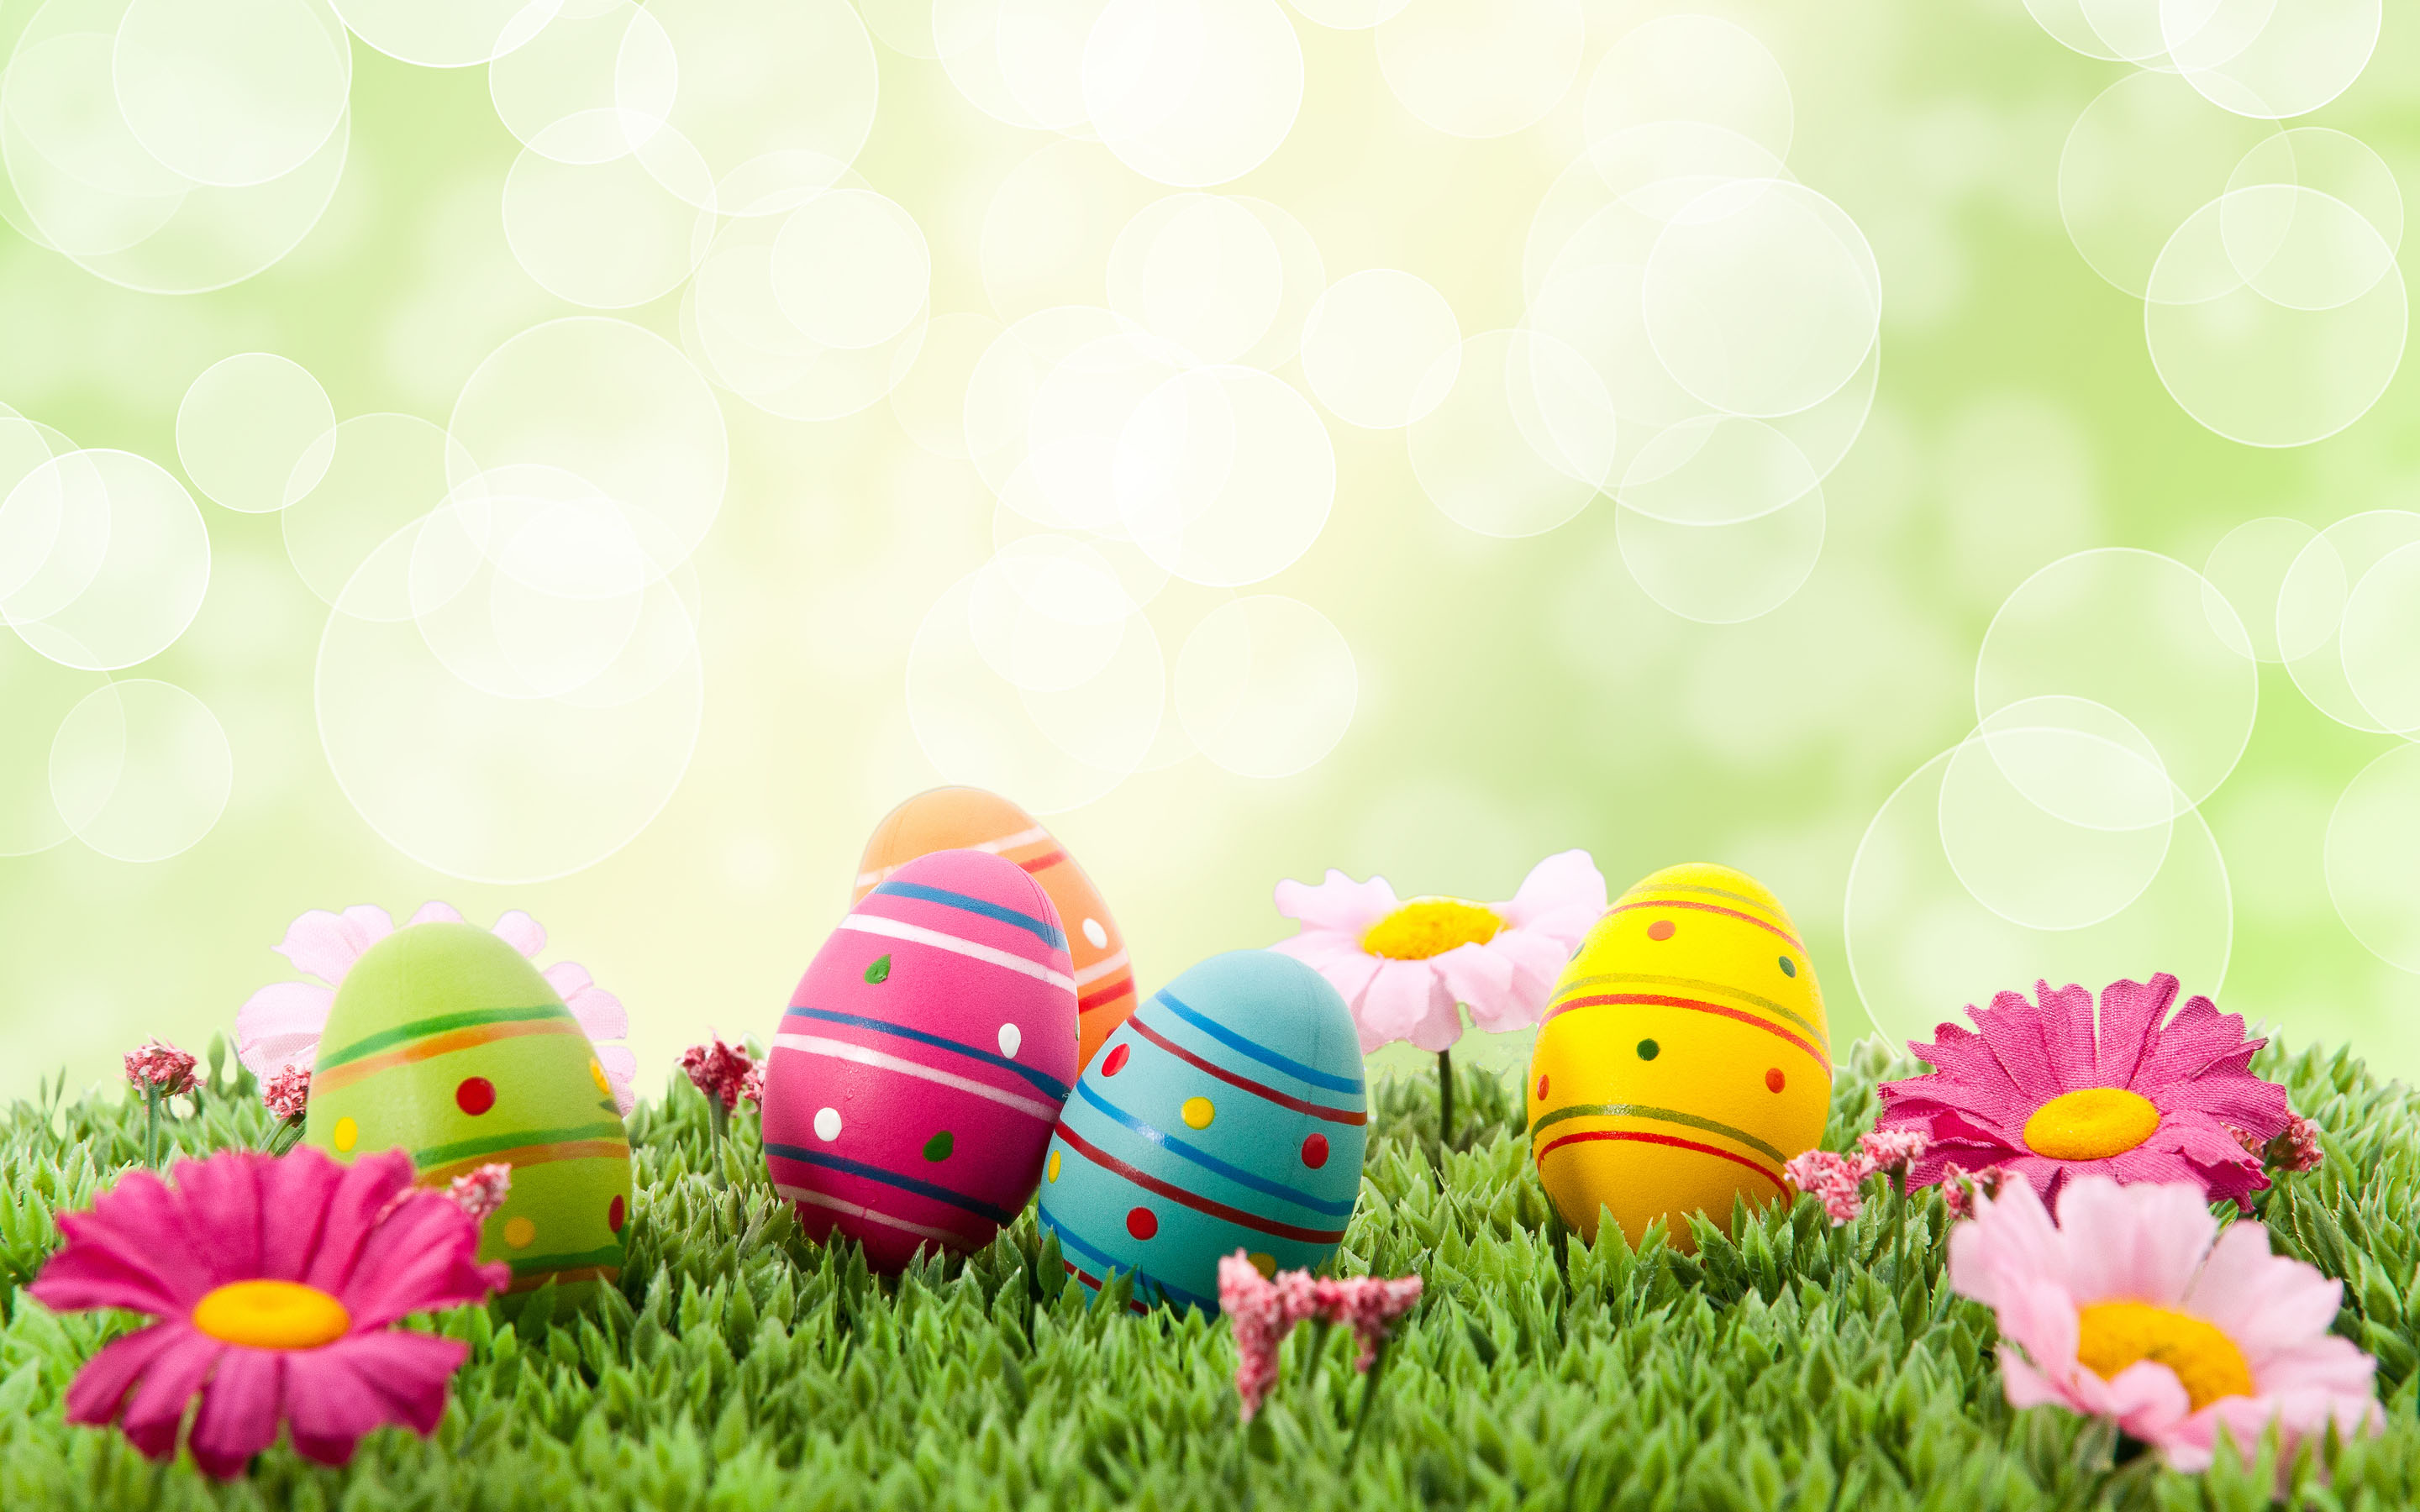 Happy Easter day wallpaper 2880x1800